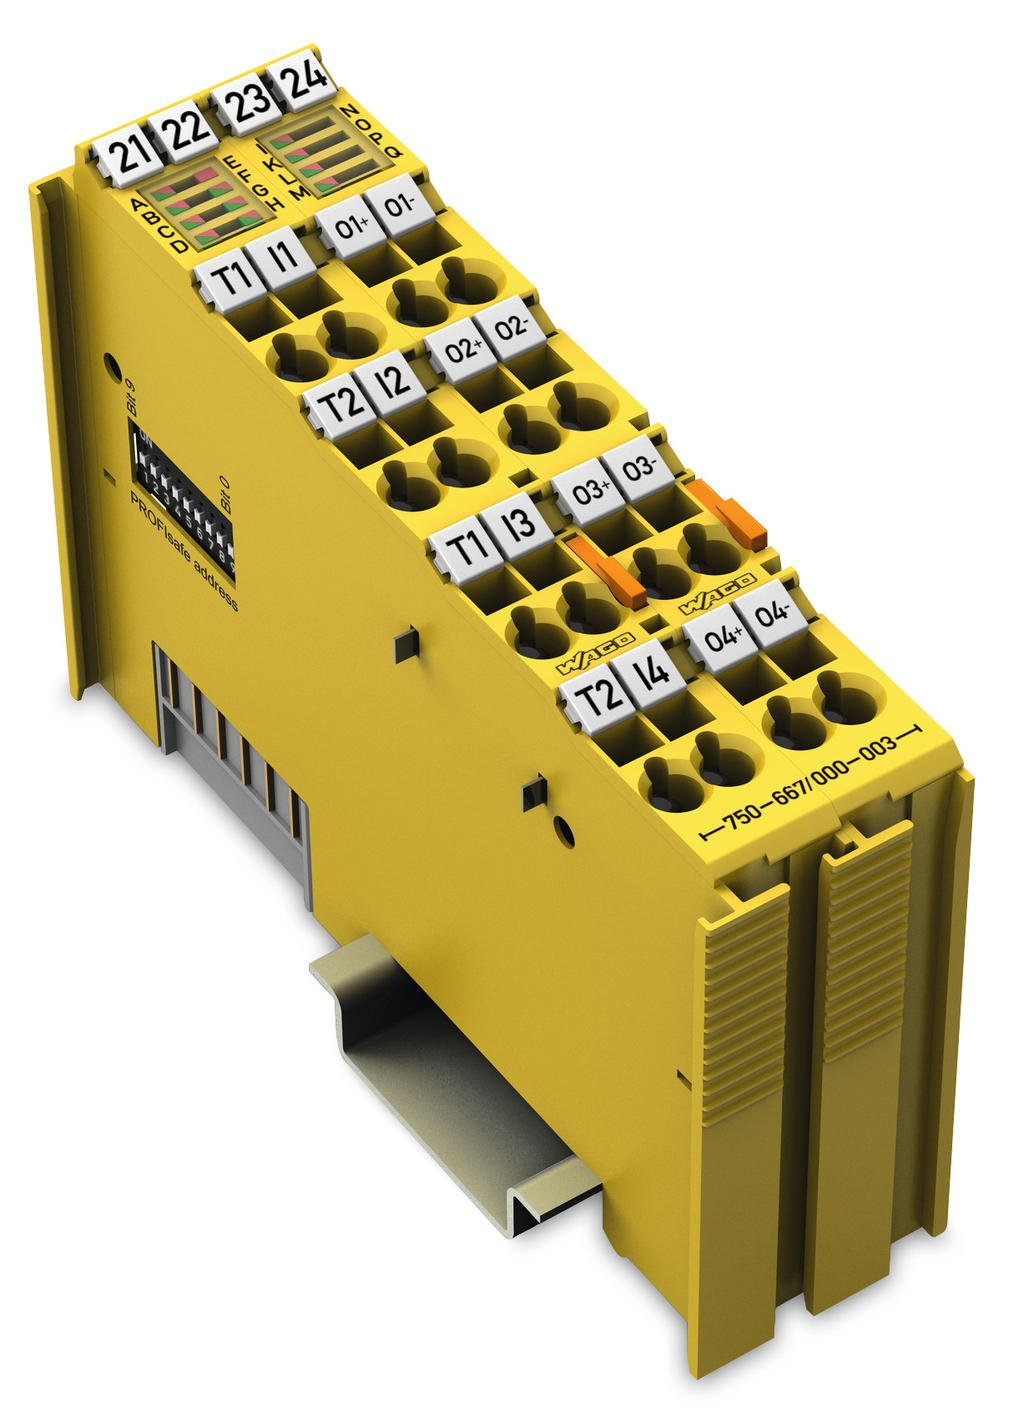 Wago Fail Safe 4 Channel Digital Input Output 750 667 000 003 Perform Short Circuit Testing On All Power Circuits And Plc Outputs 24 Vdc 2 A Profisafe V20 Ipar